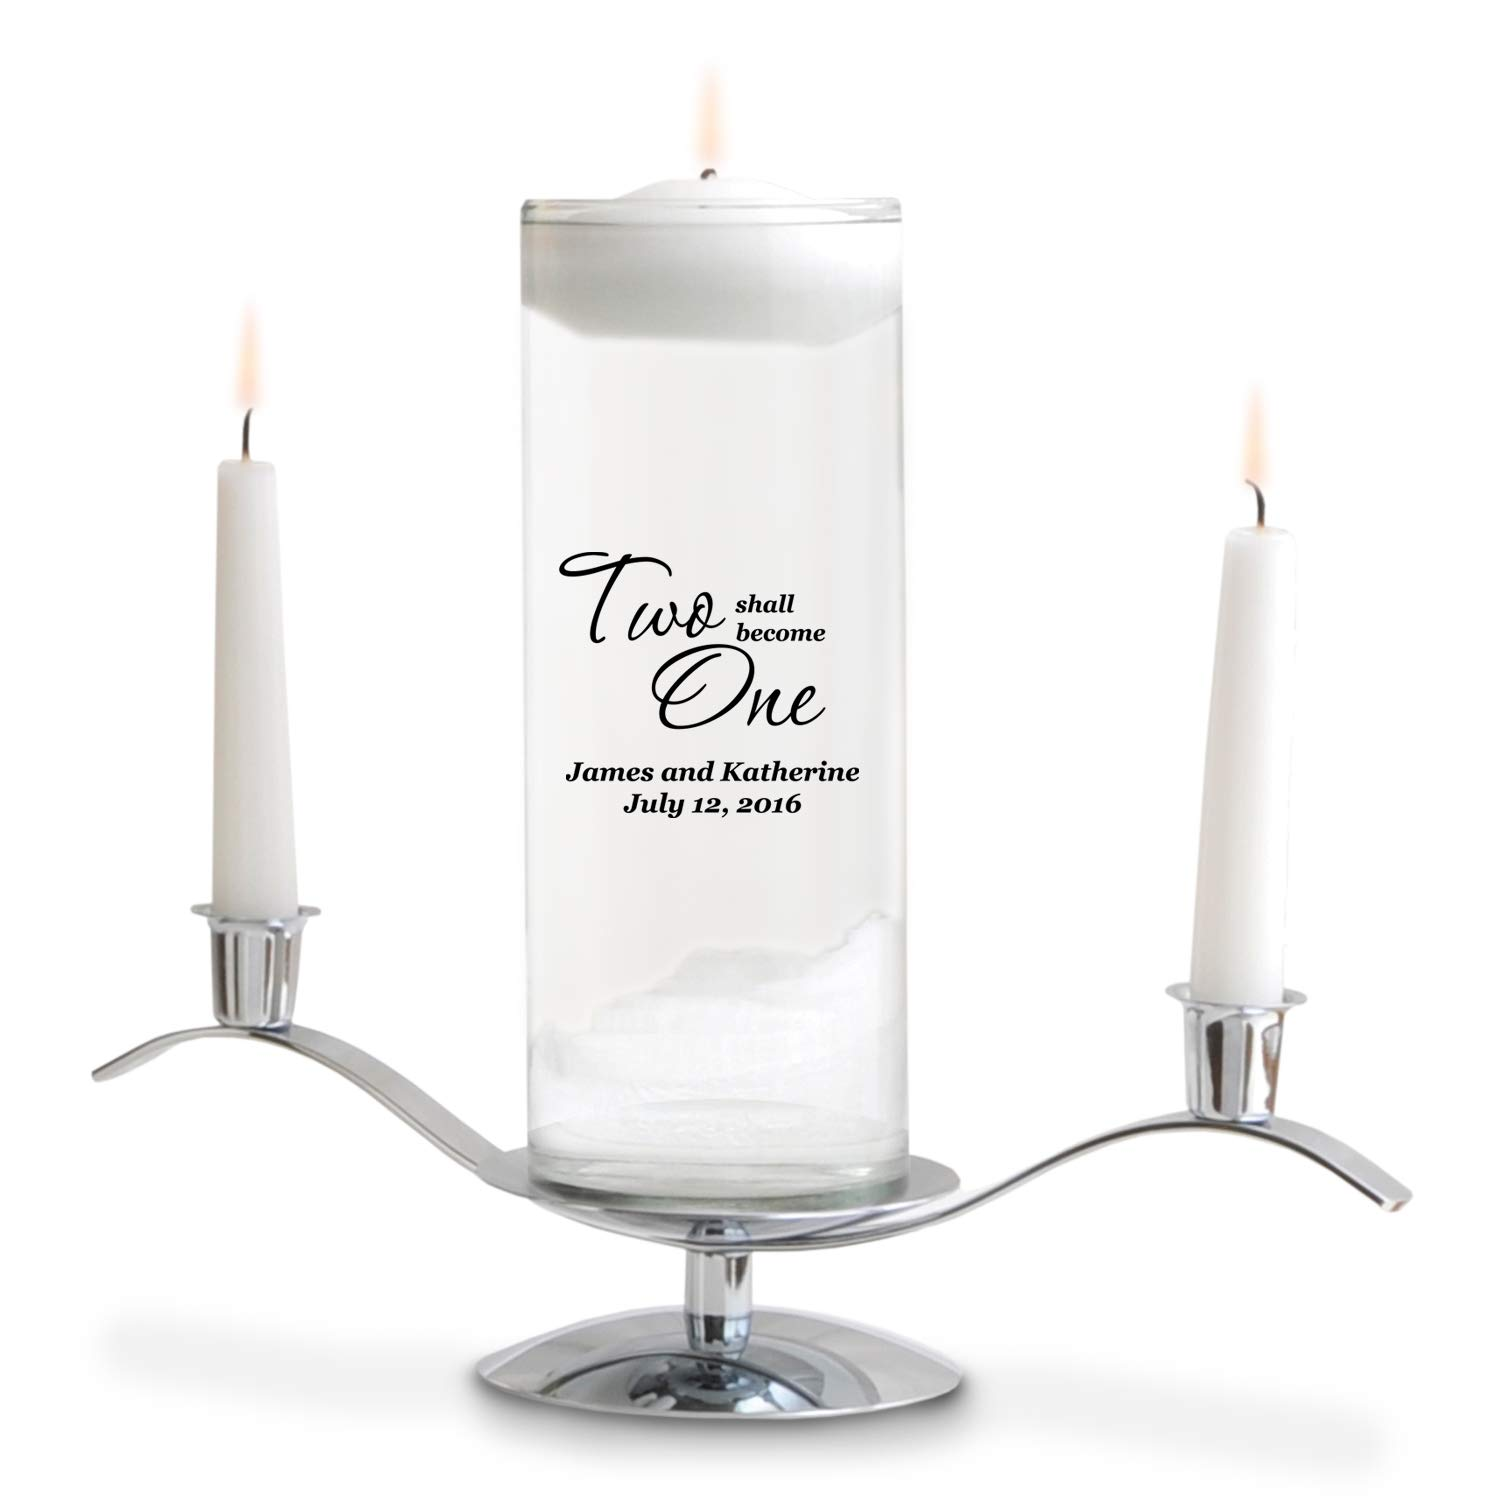 Personalized Floating Wedding Unity Candle - Personalized Wedding Candle - Includes Stand - Two Shall Become One